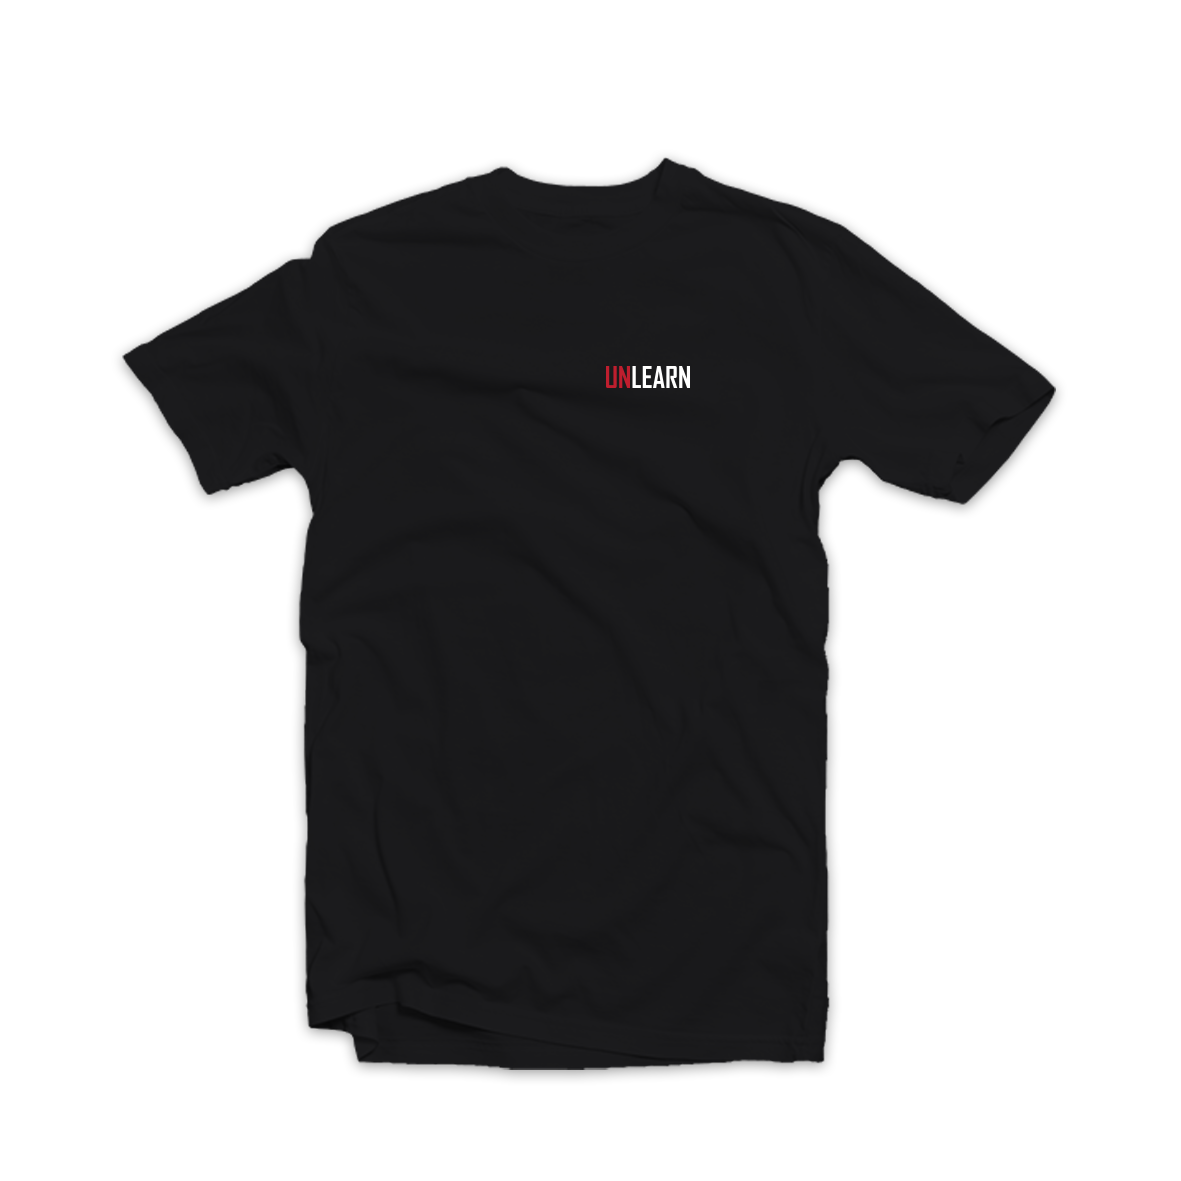 Unlearn Tee Black